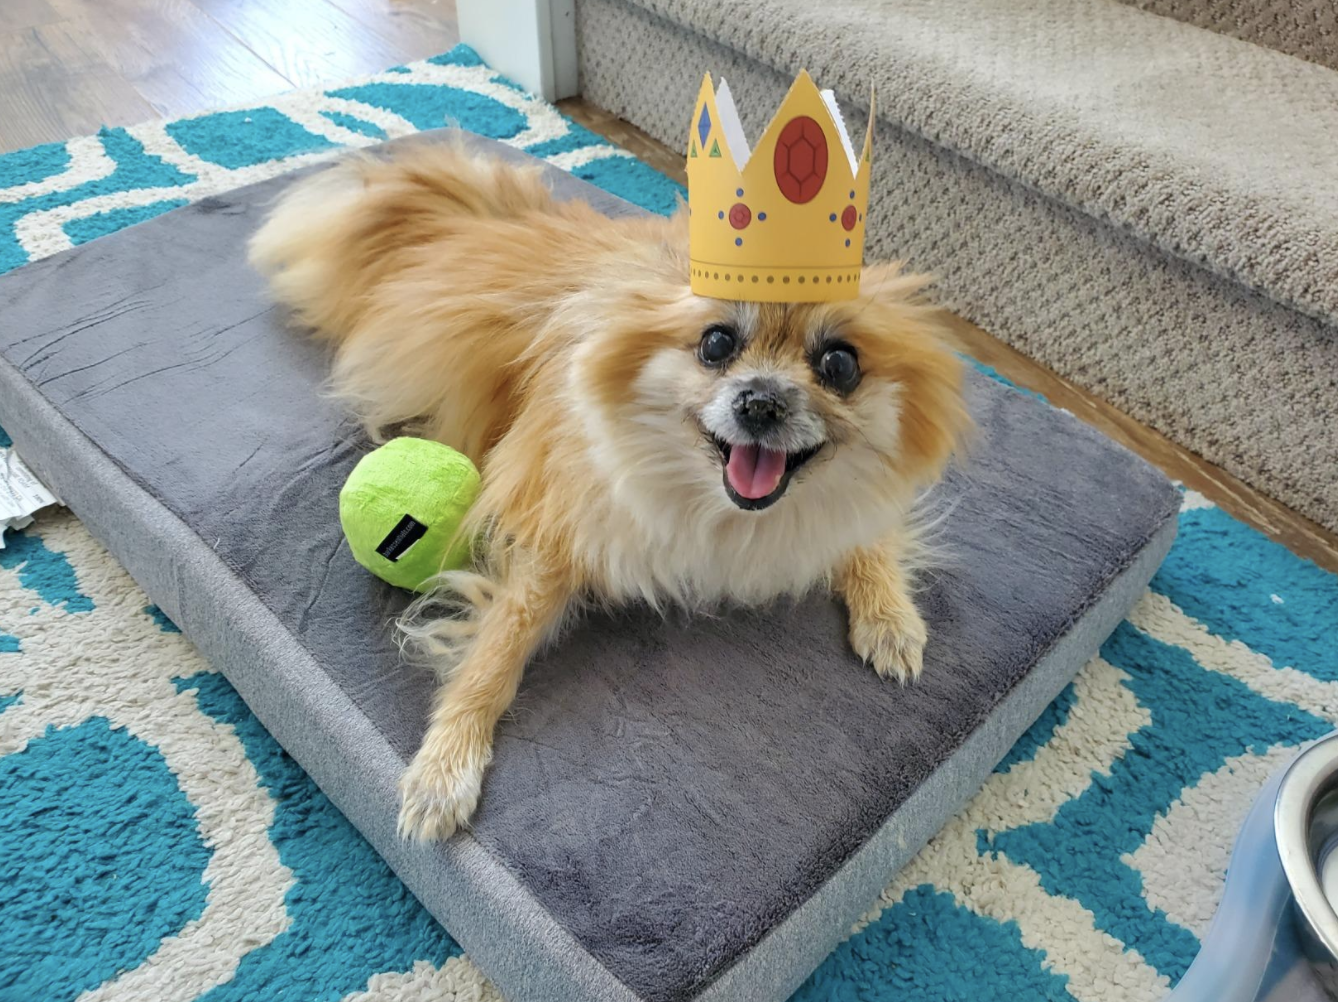 Happy Pomeranian wearing a crown on a gray washable orthopedic dog bed